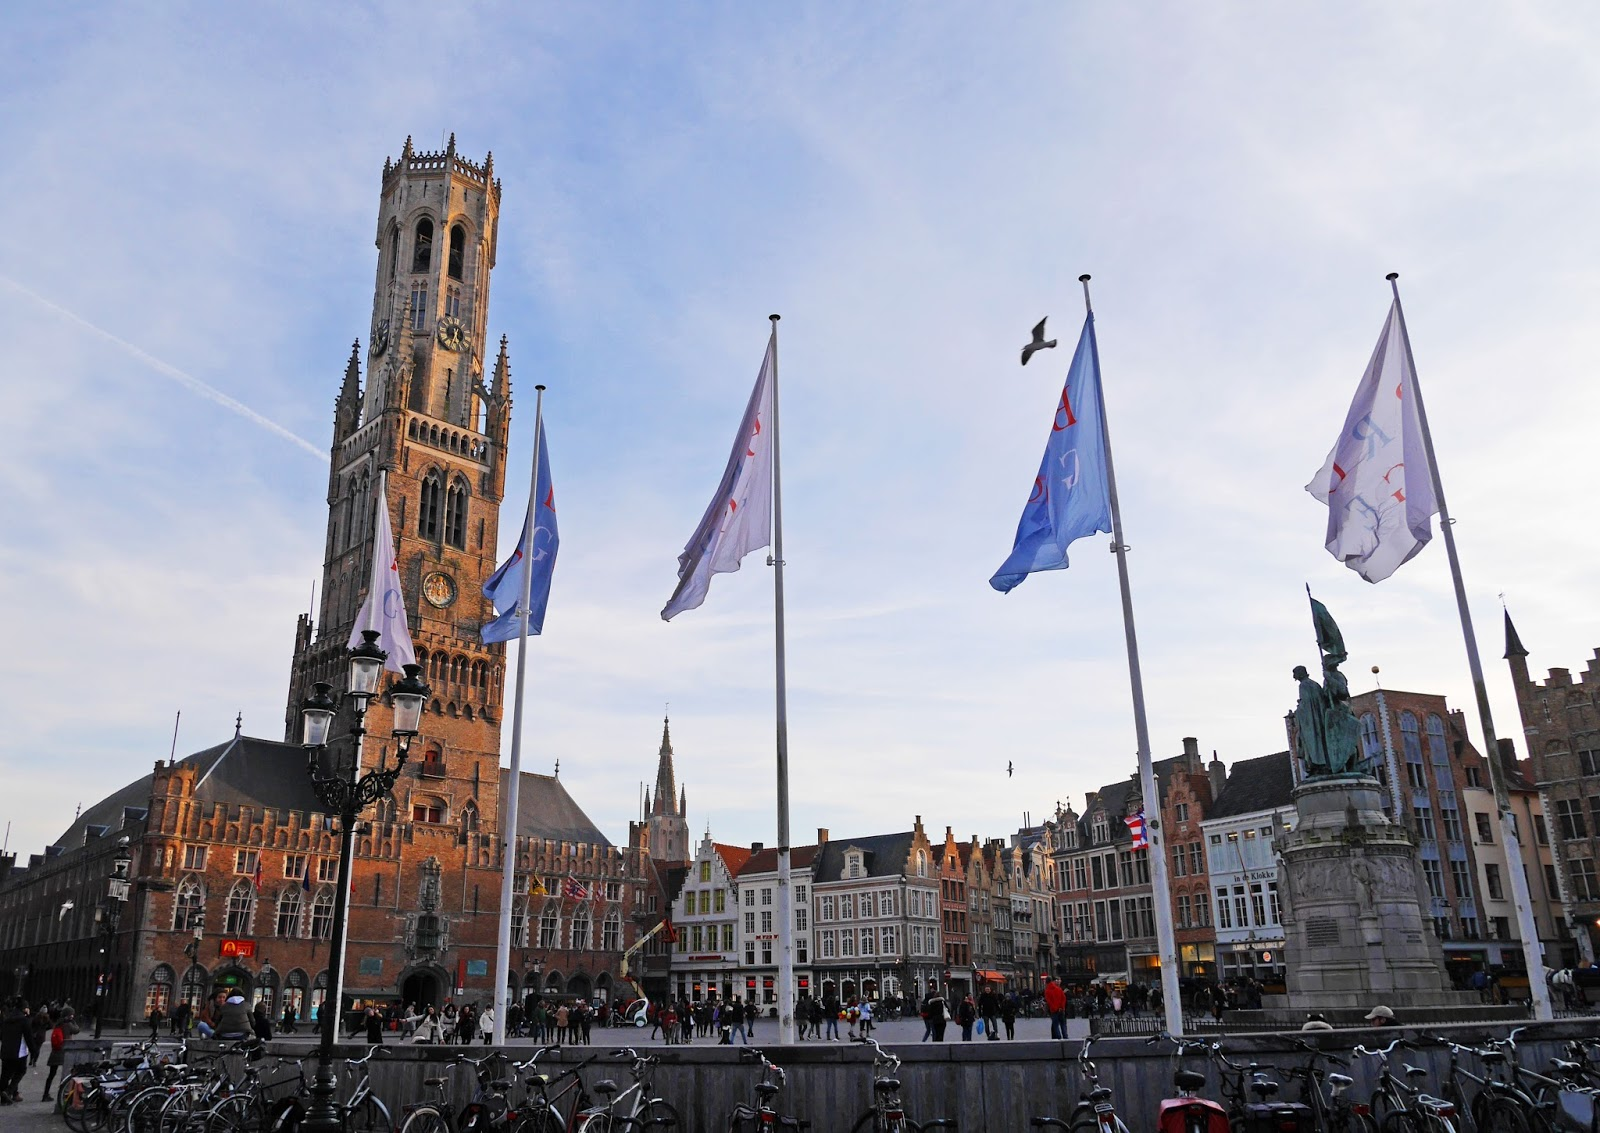 Bruges Market Square at sunset, Belgium